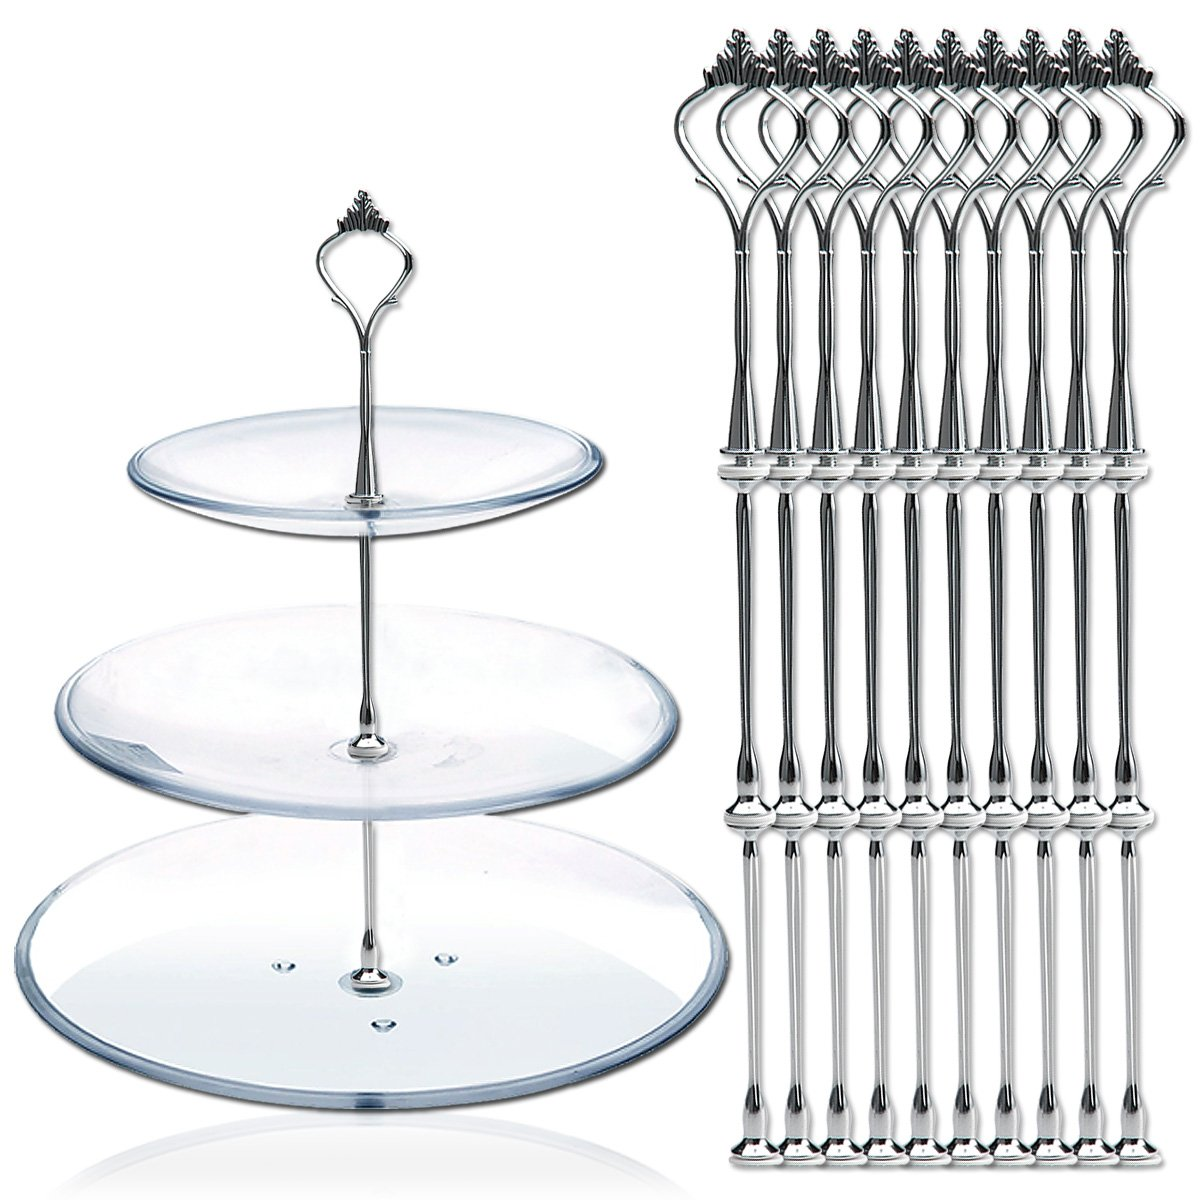 AKORD 10 x Sets 2 or 3 Tier Cake Plate Stand Fittings Silver Plate Stands New KI-8